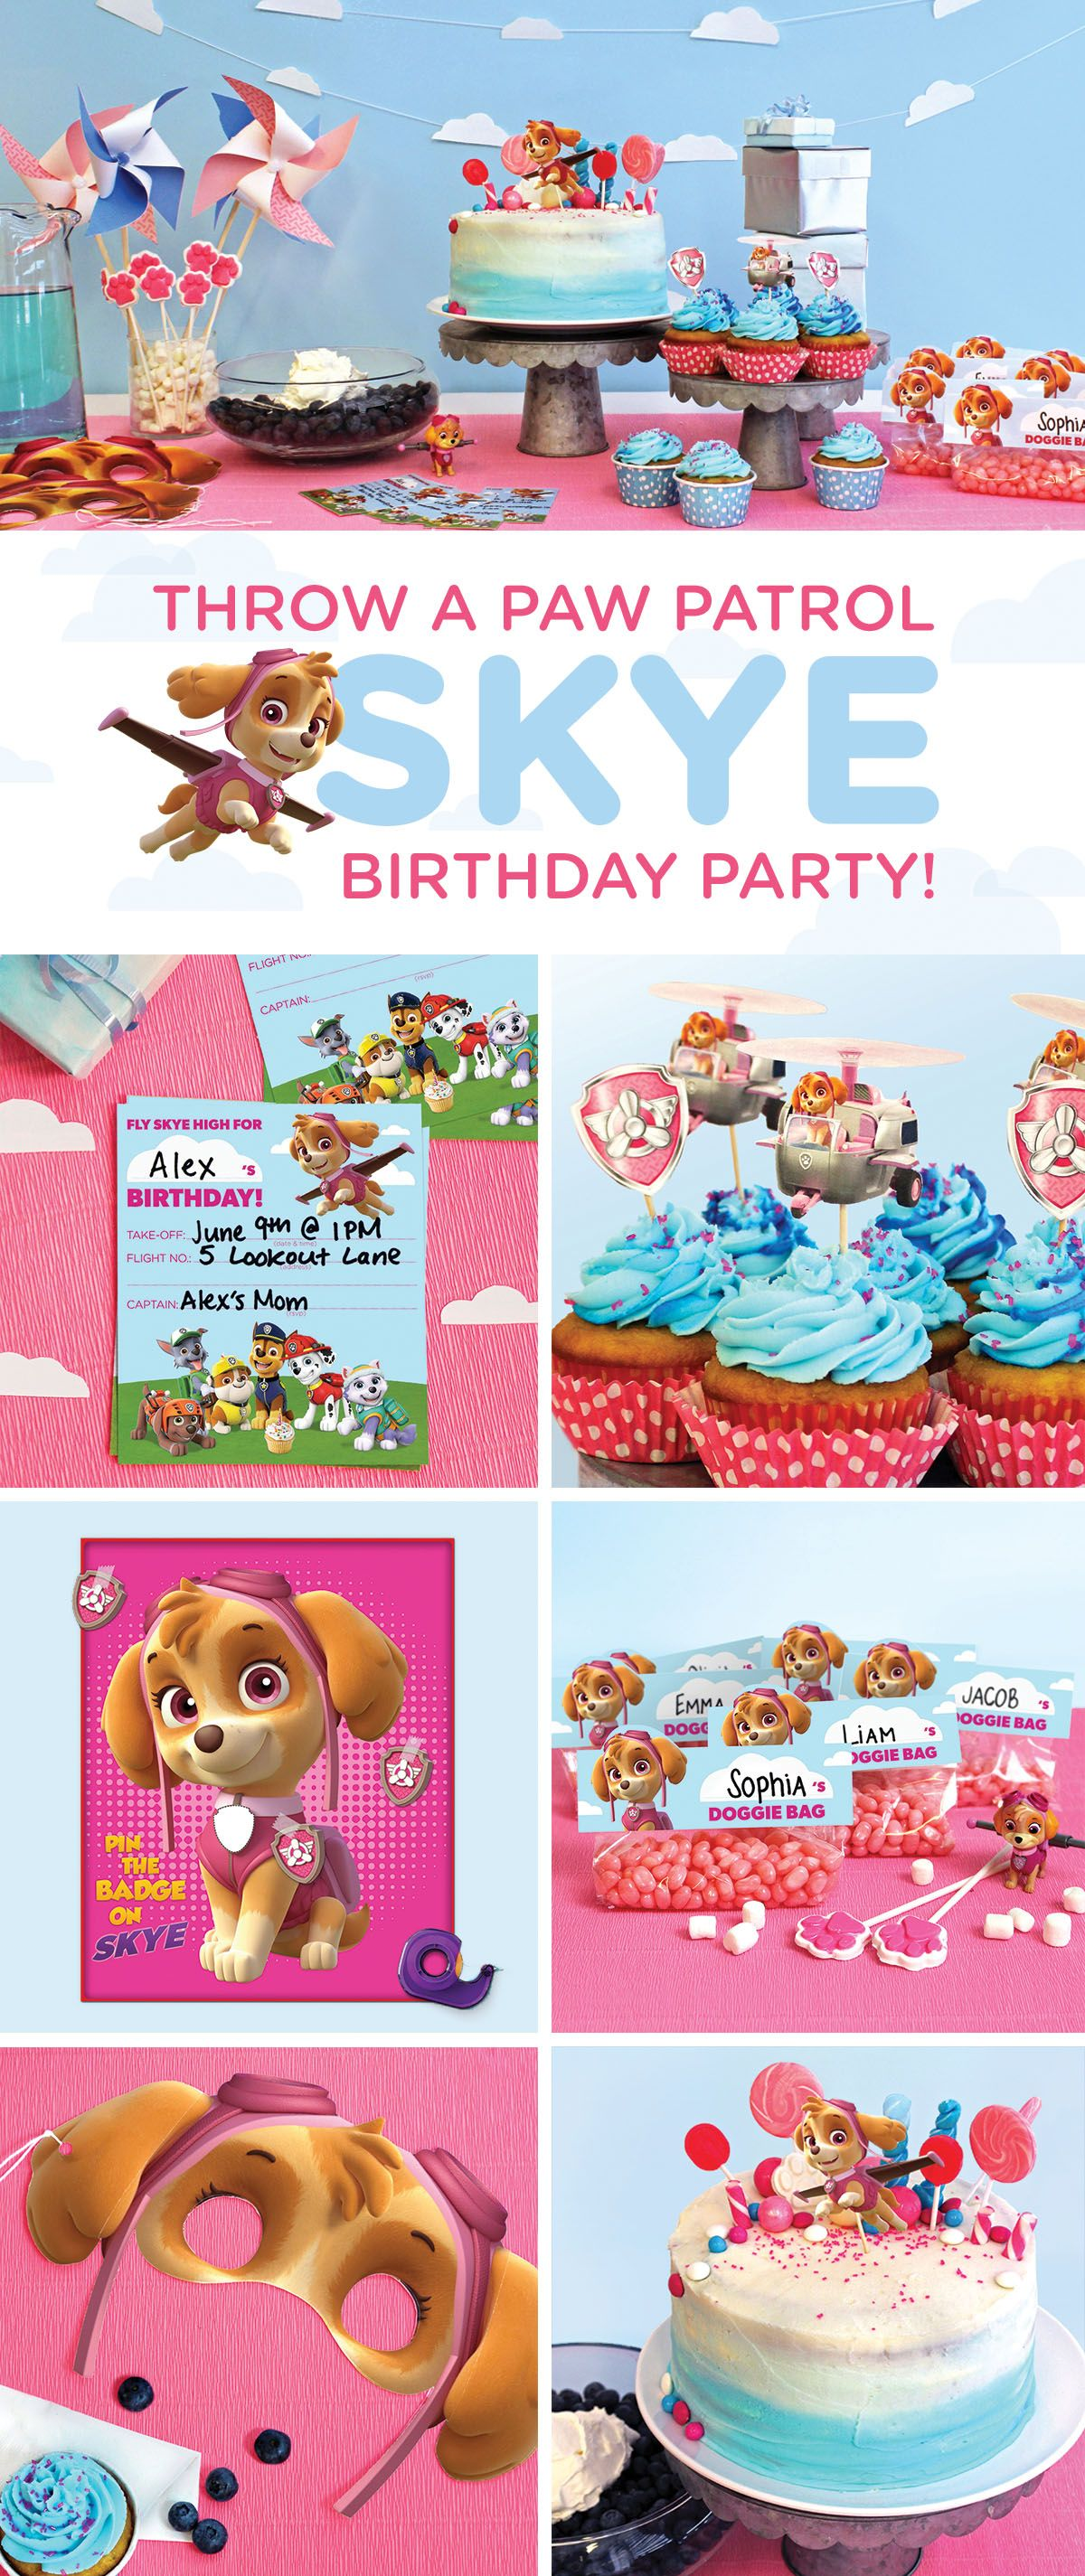 Planning a Skye PAW Patrol birthday party for your preschooler? This simple, step-by-step guide will transform your home into a cloud-, helicopter-, and pink-and-blue-filled wonderland! Make your child's wishes come true with the PAW Patrol birthday party they've always dreamed of with our kids party planning tips, free printable party supplies, recipes, party games, and more.